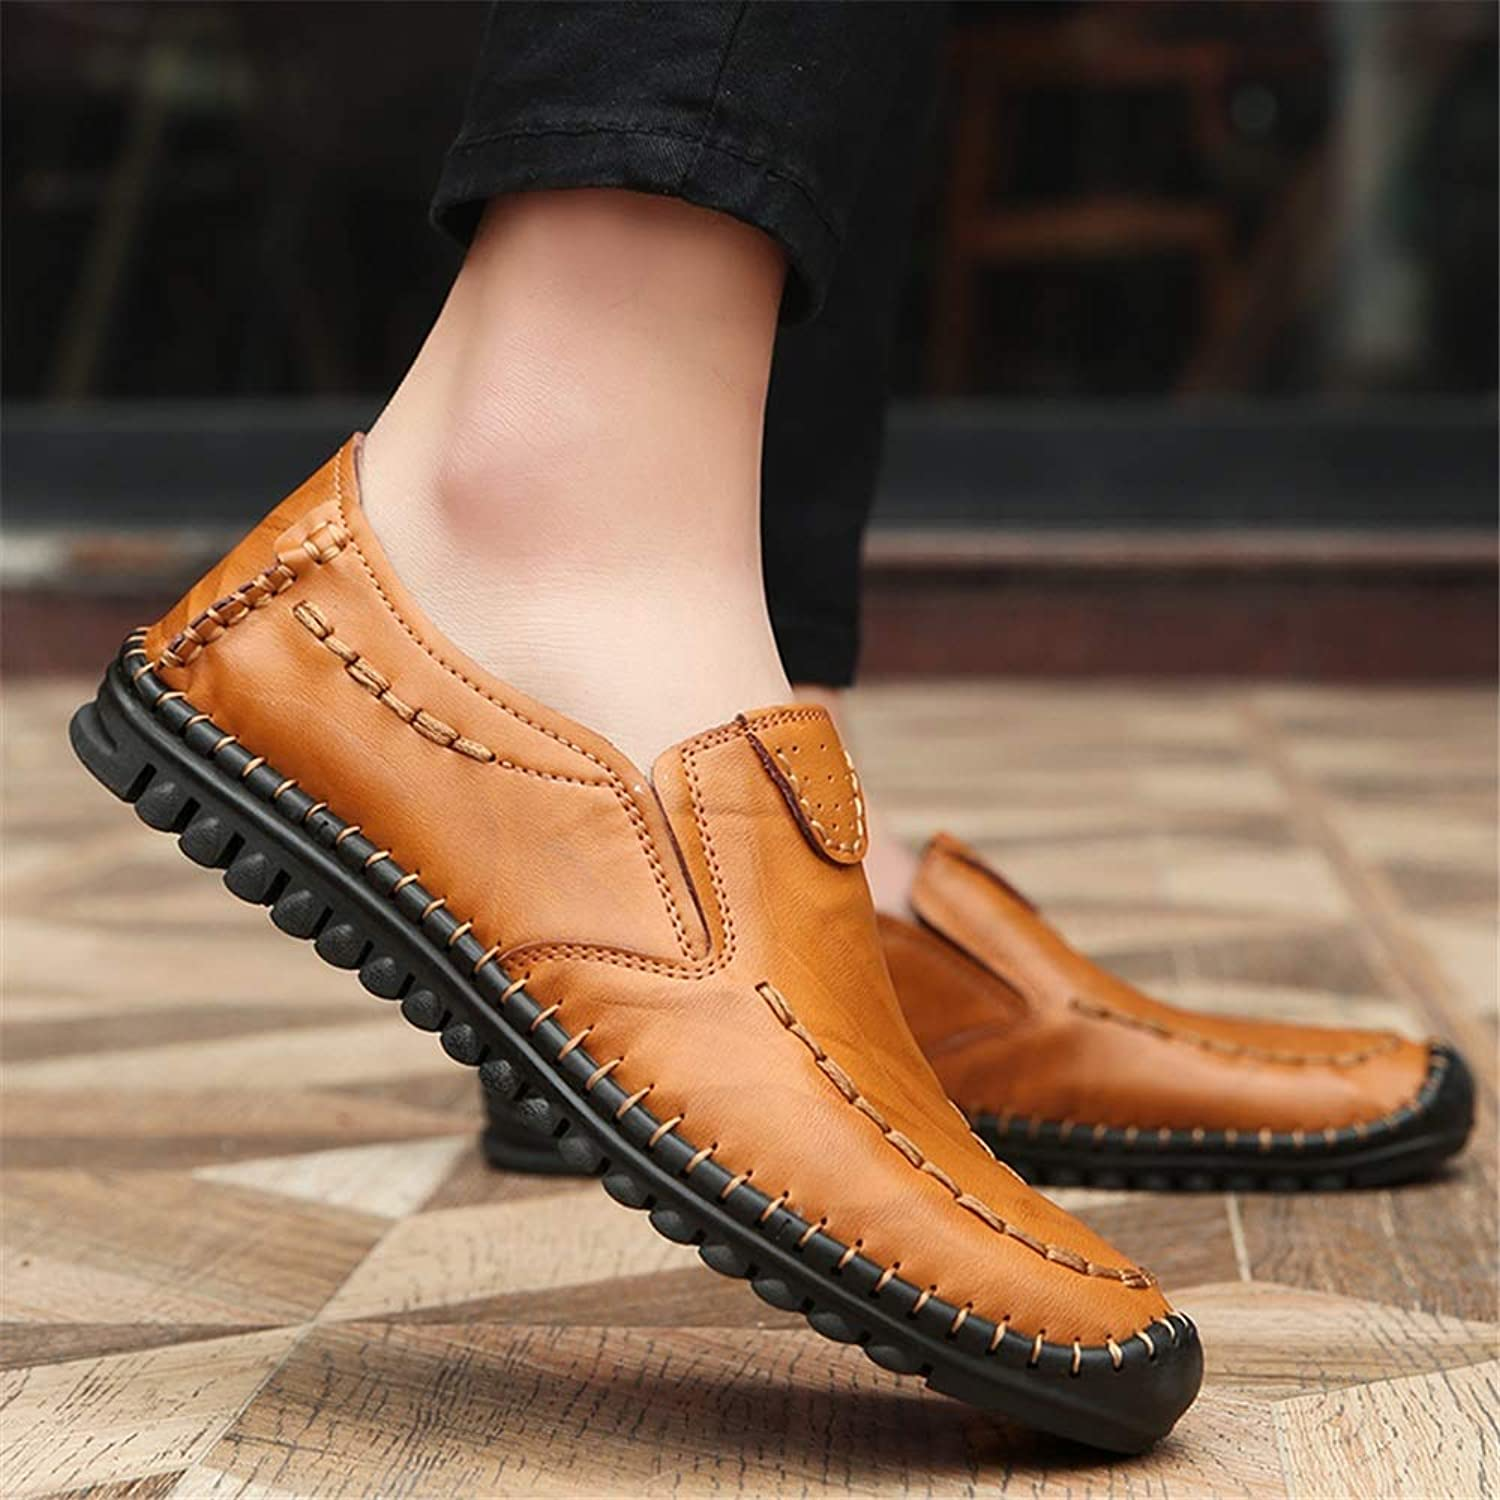 Ino Drive Loafer for Men Boat Moccasins Slip On Style OX Leather Anti-Collision Toe Handtailor Retro